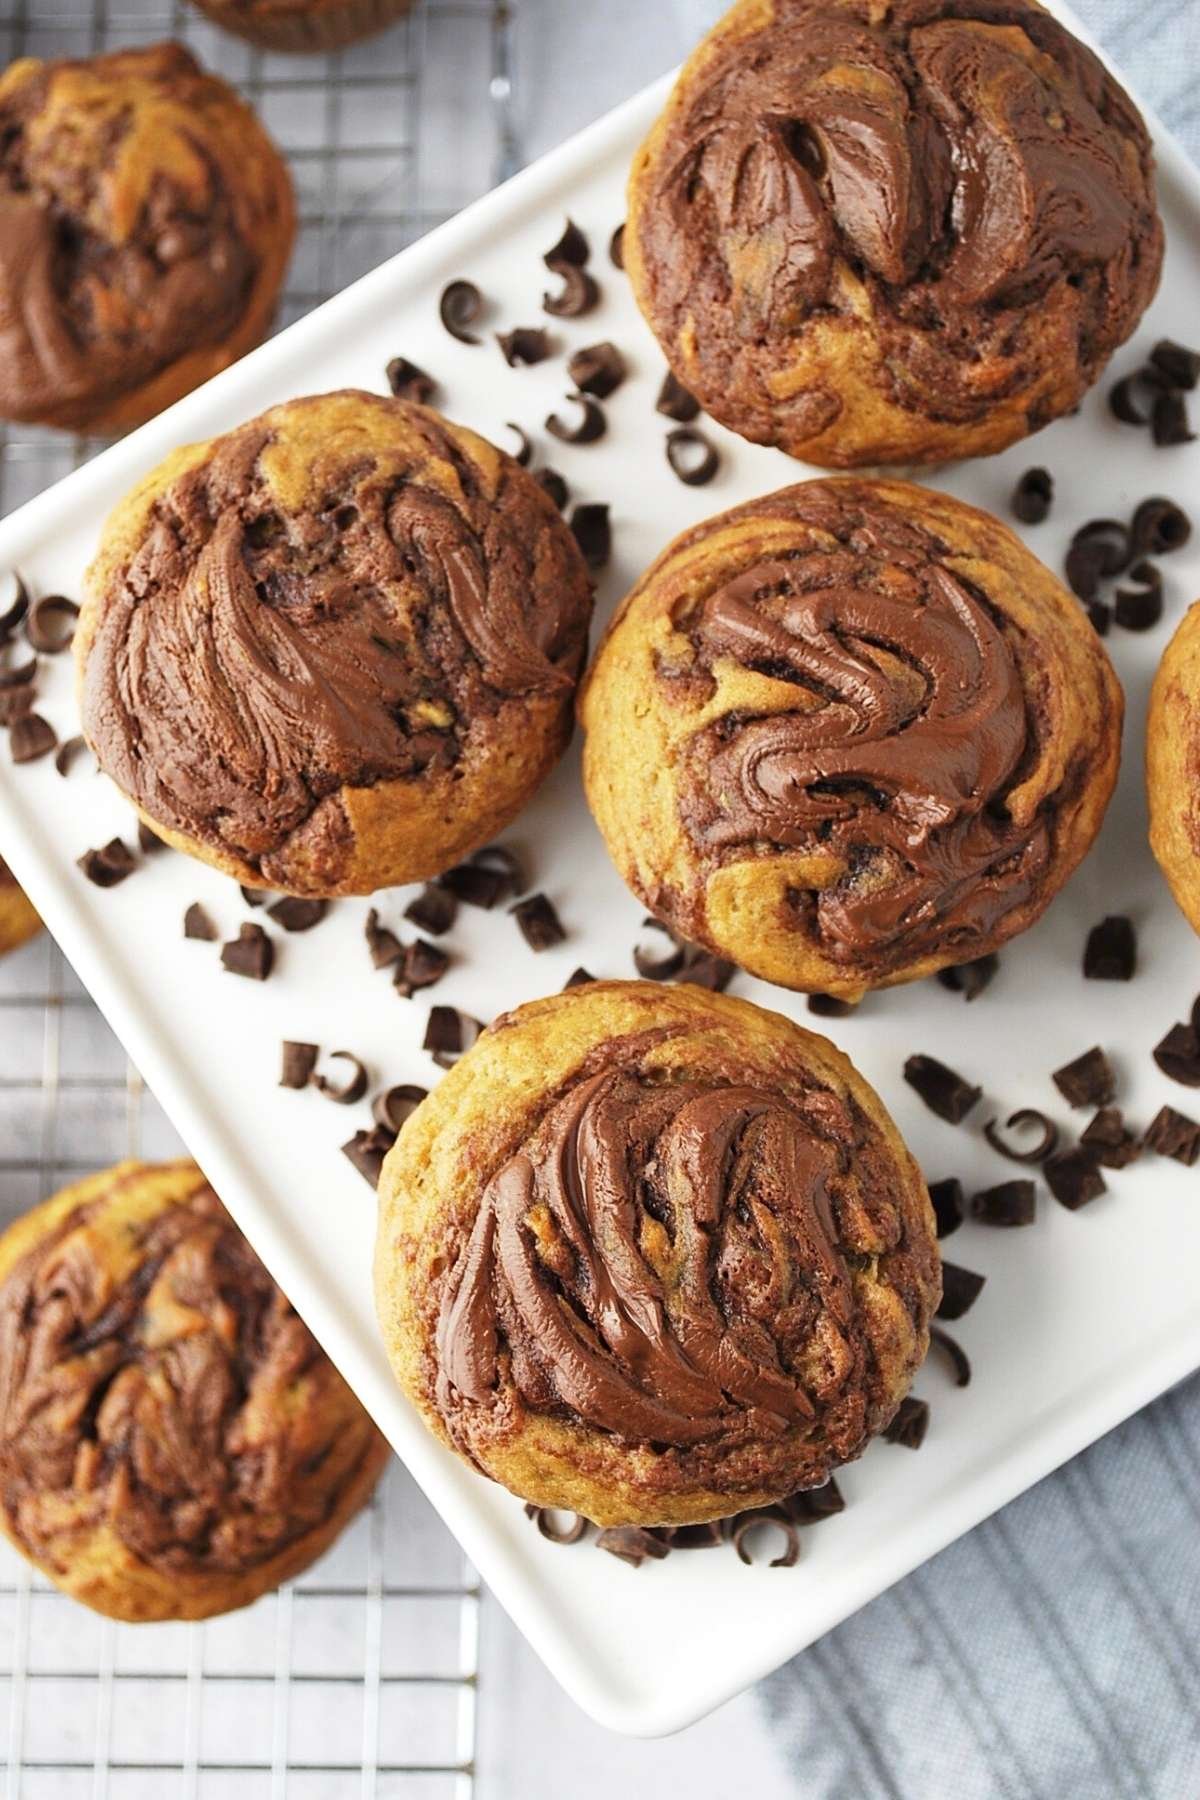 overhead photo of banana nutella muffins on a platter with chocolate shavings